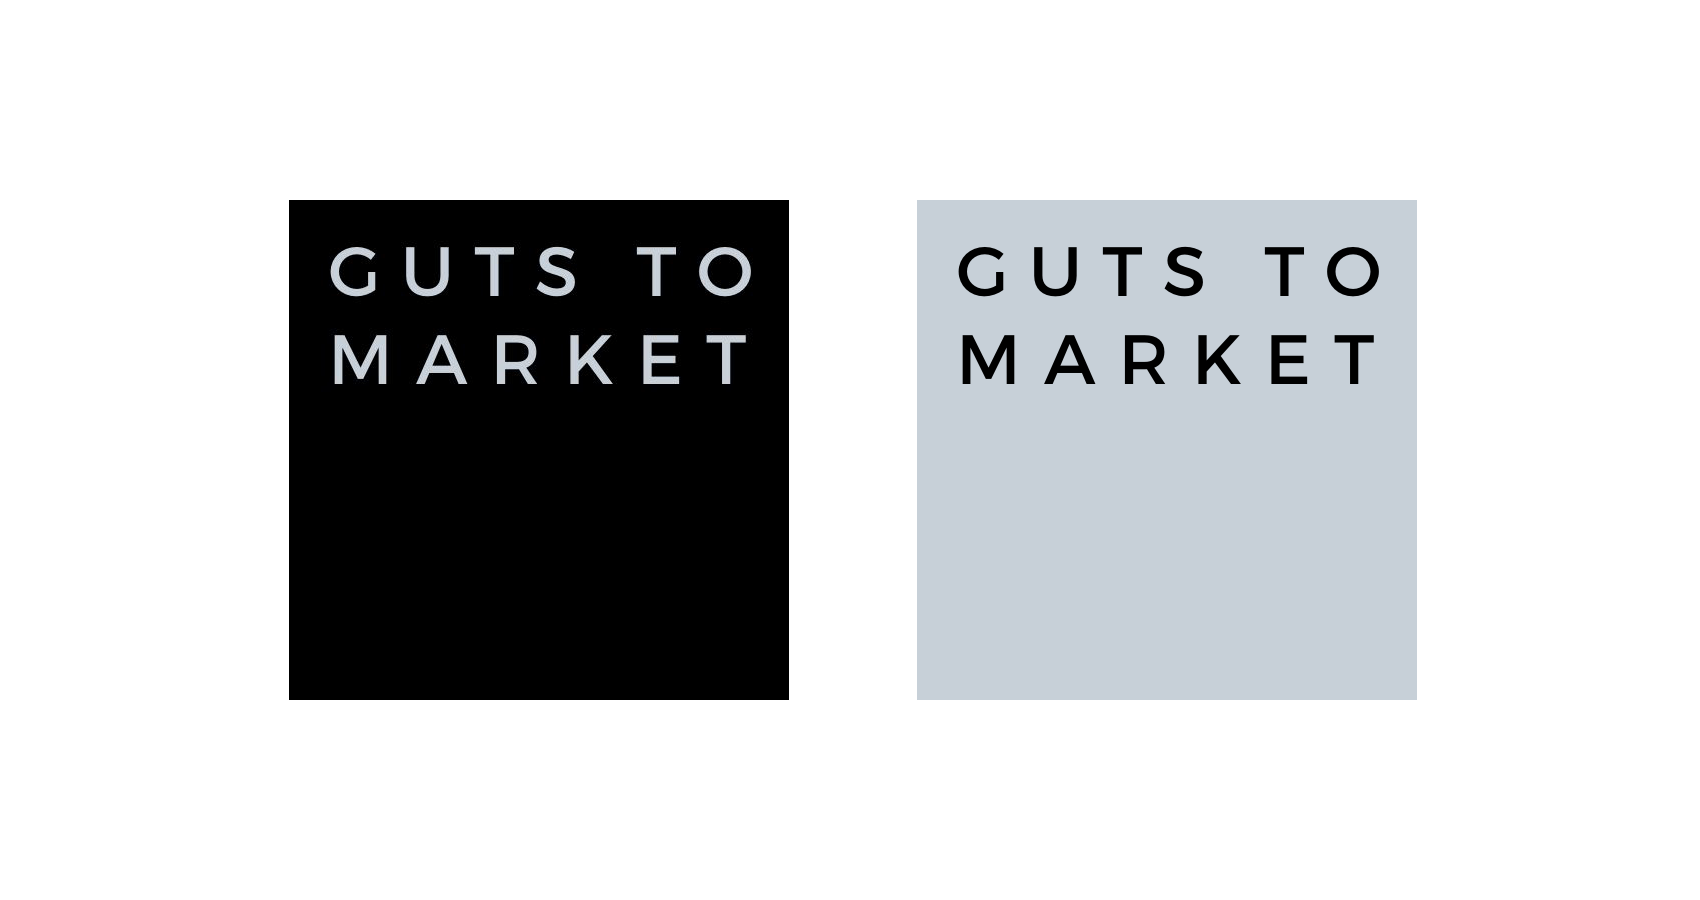 guts to market logo